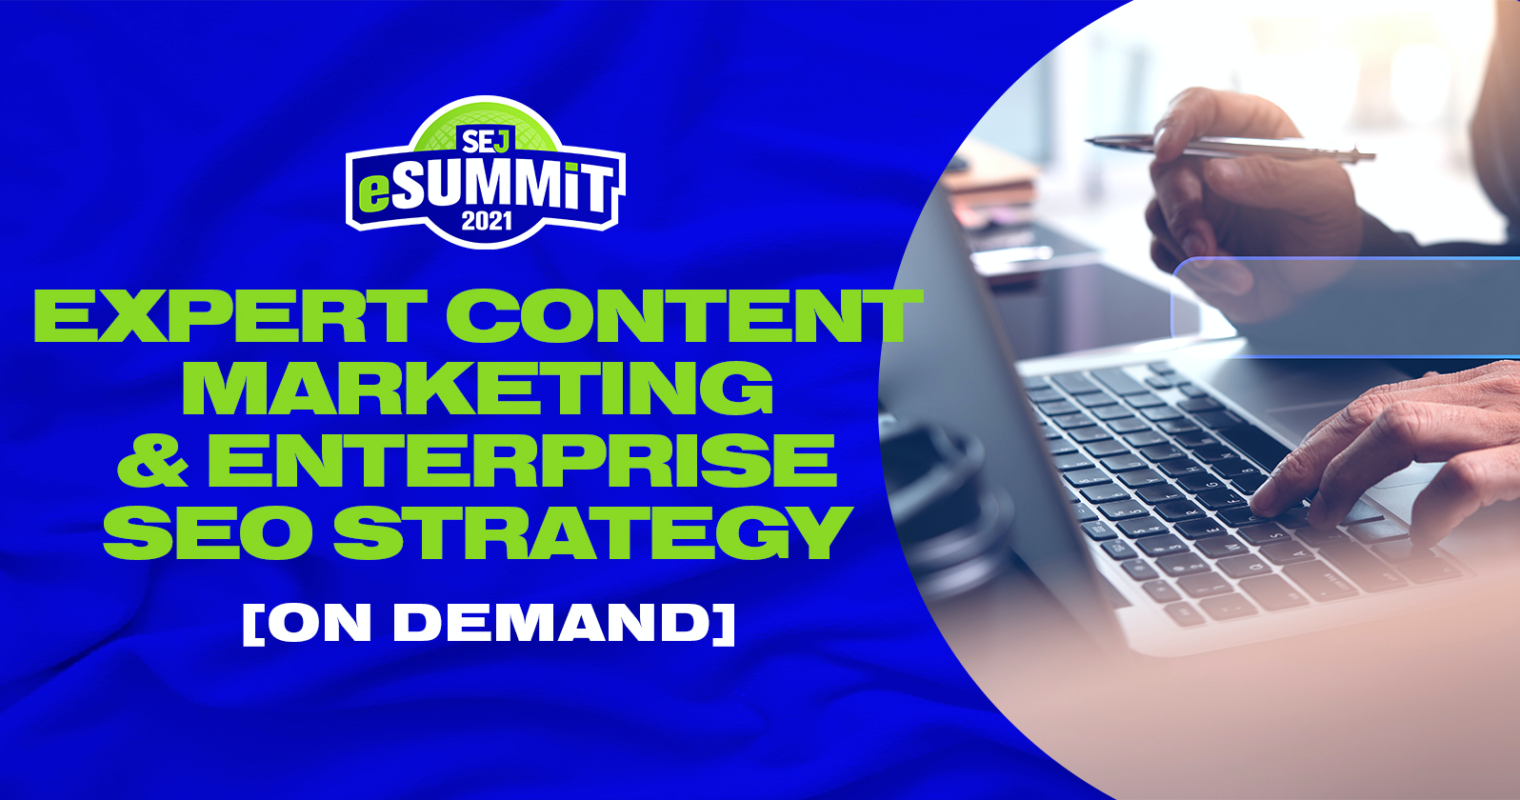 Expert Content Marketing & Enterprise SEO Strategy, On-Demand